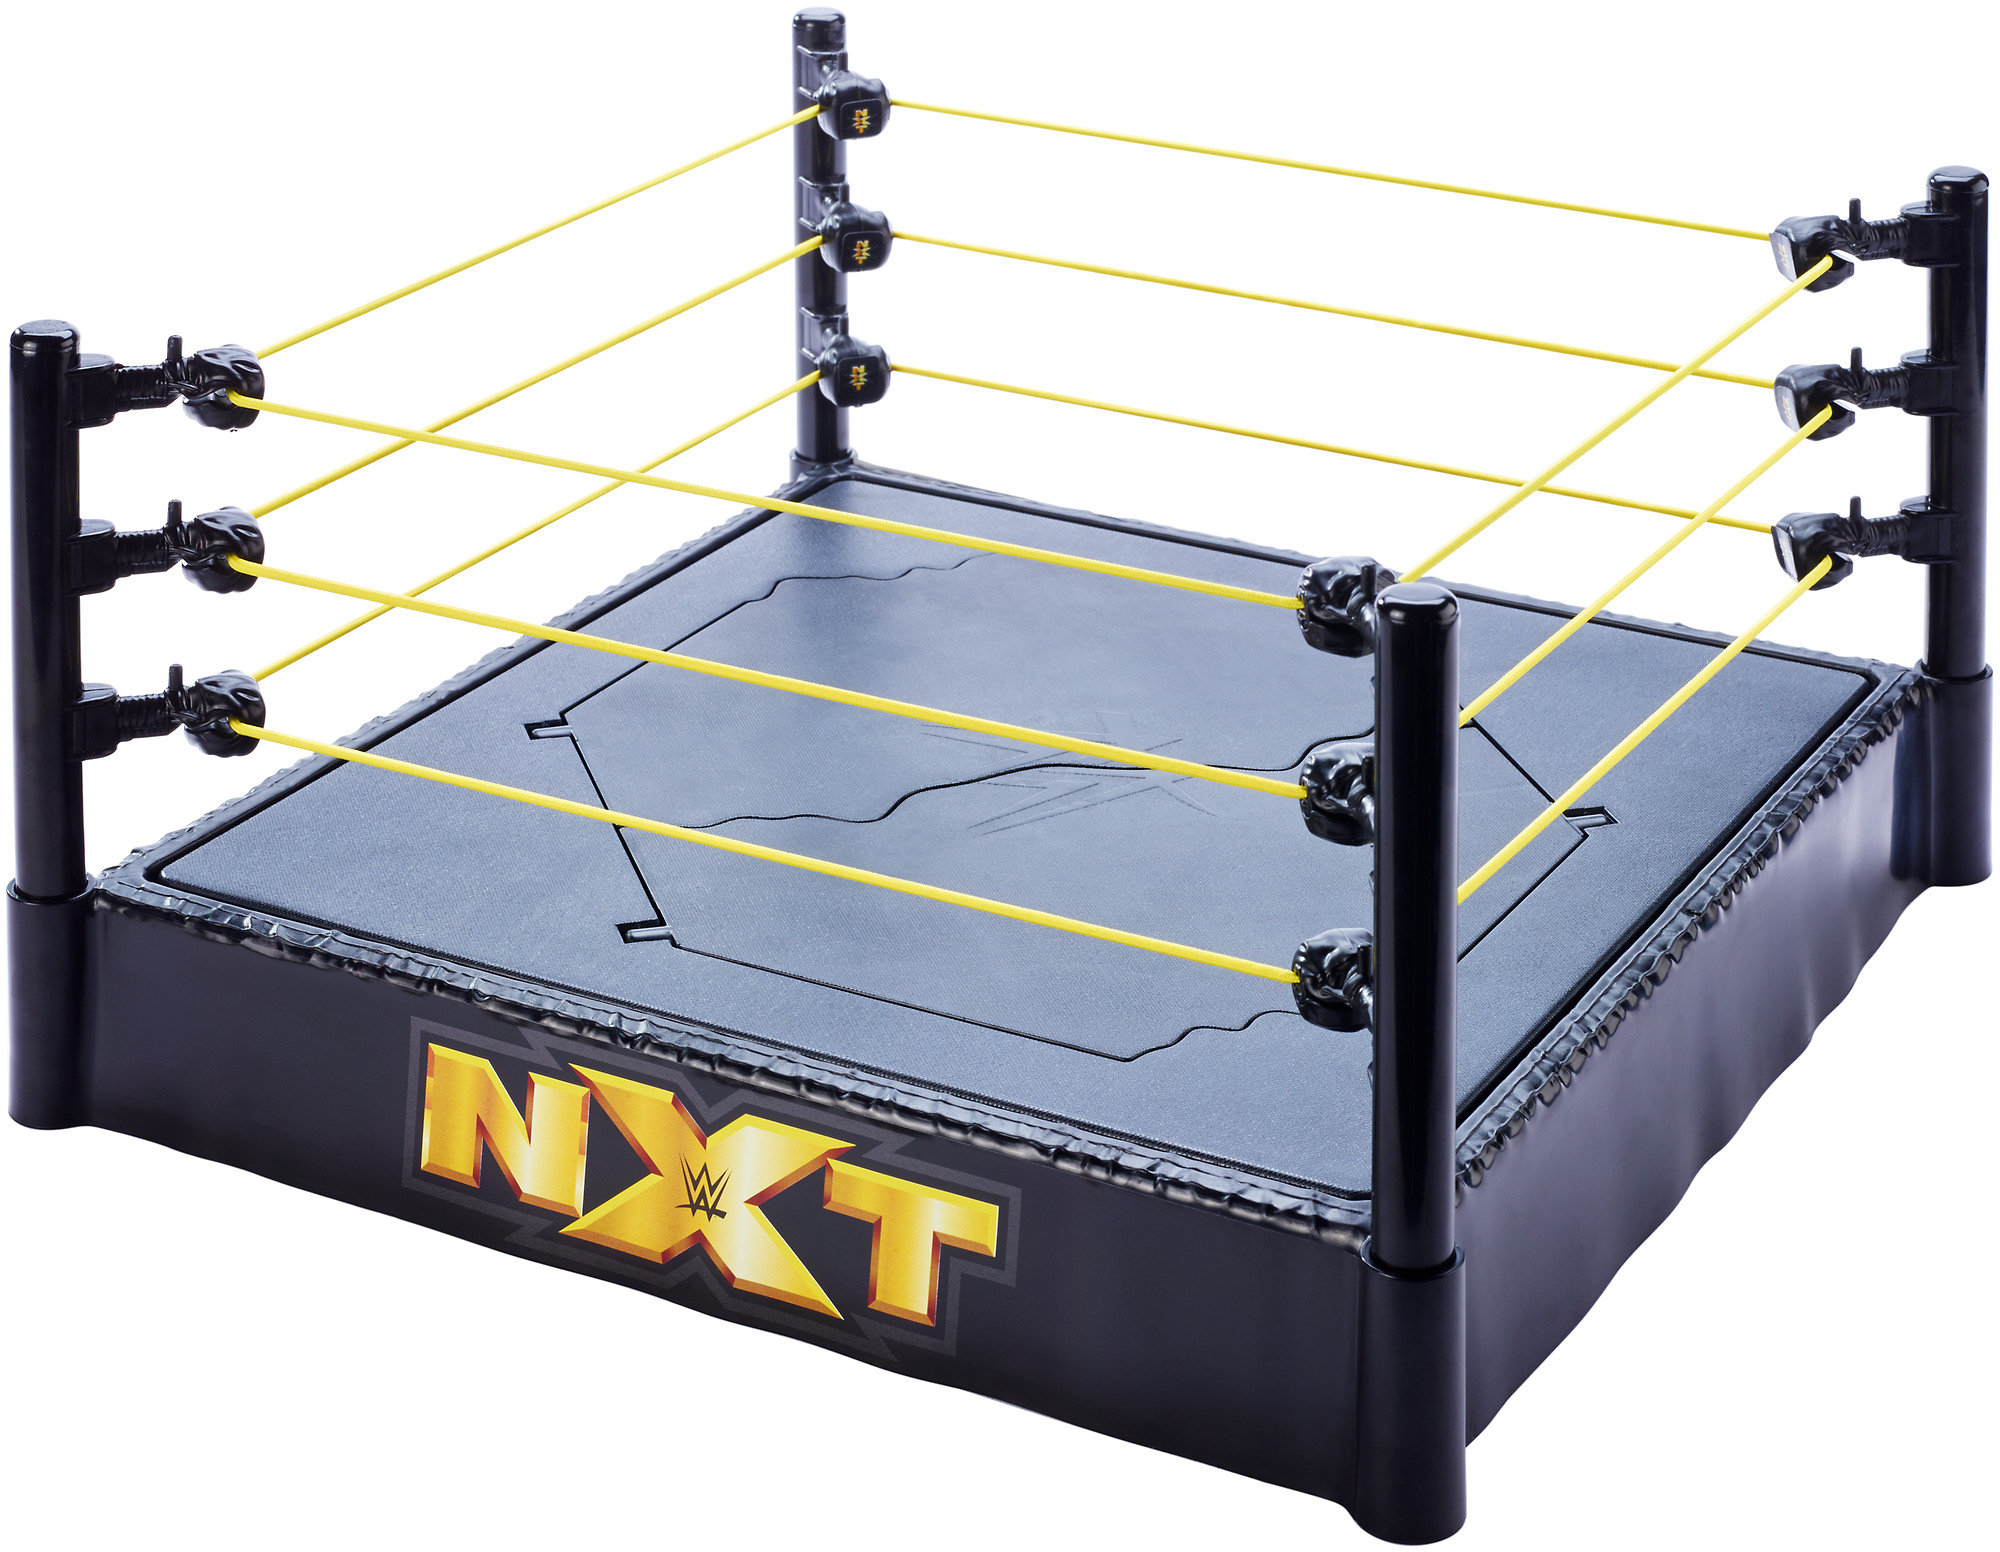 WWE Nxt Superstar Ring by Mattel